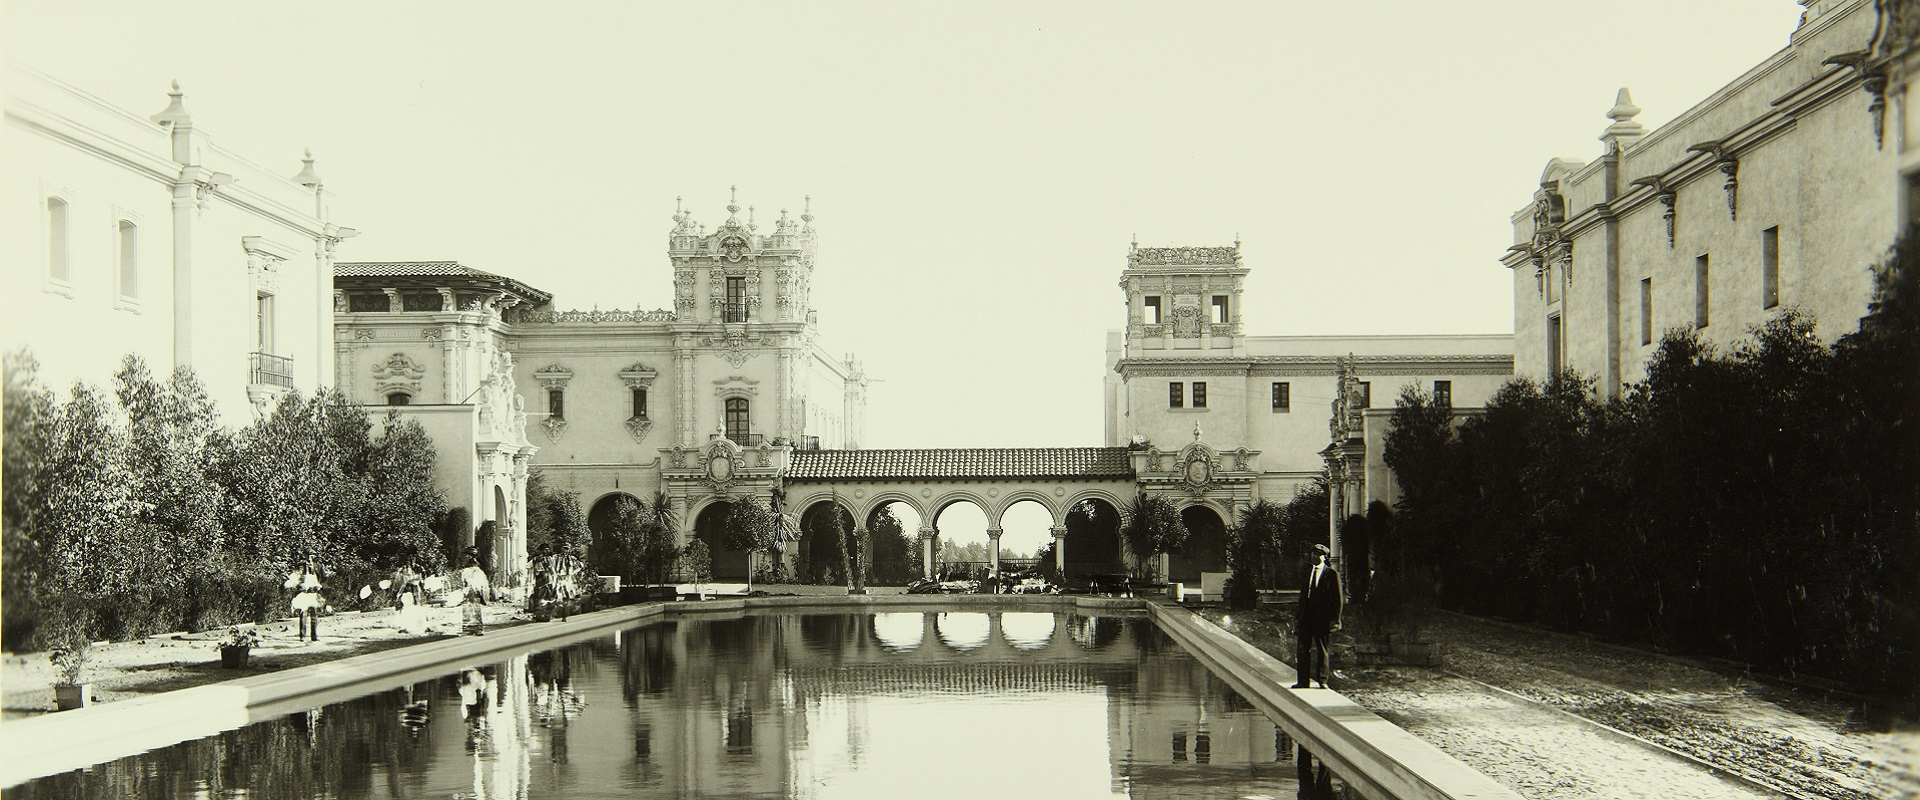 The Lily Pond in 1915 at Balboa Park